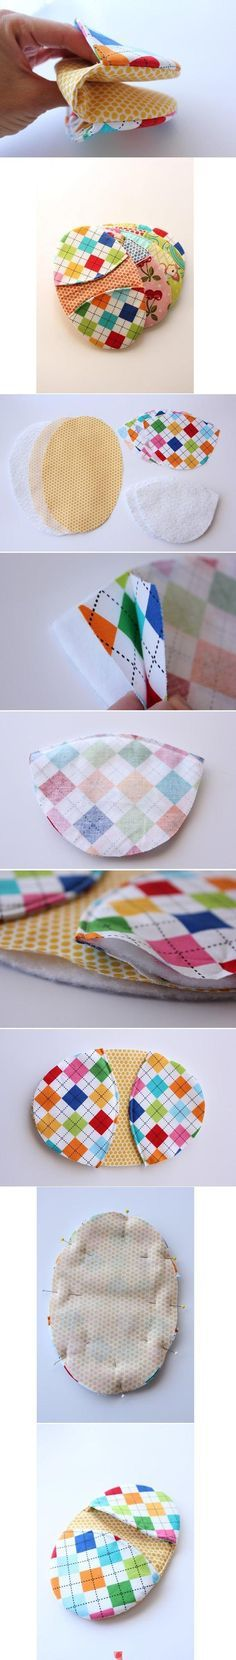 Trendy sewing crafts for christmas pot holders ideas Easy Sewing Projects, Sewing Hacks, Sewing Tutorials, Sewing Crafts, Sewing Patterns, Diy Projects, Sewing Diy, Diy Crafts, Free Tutorials